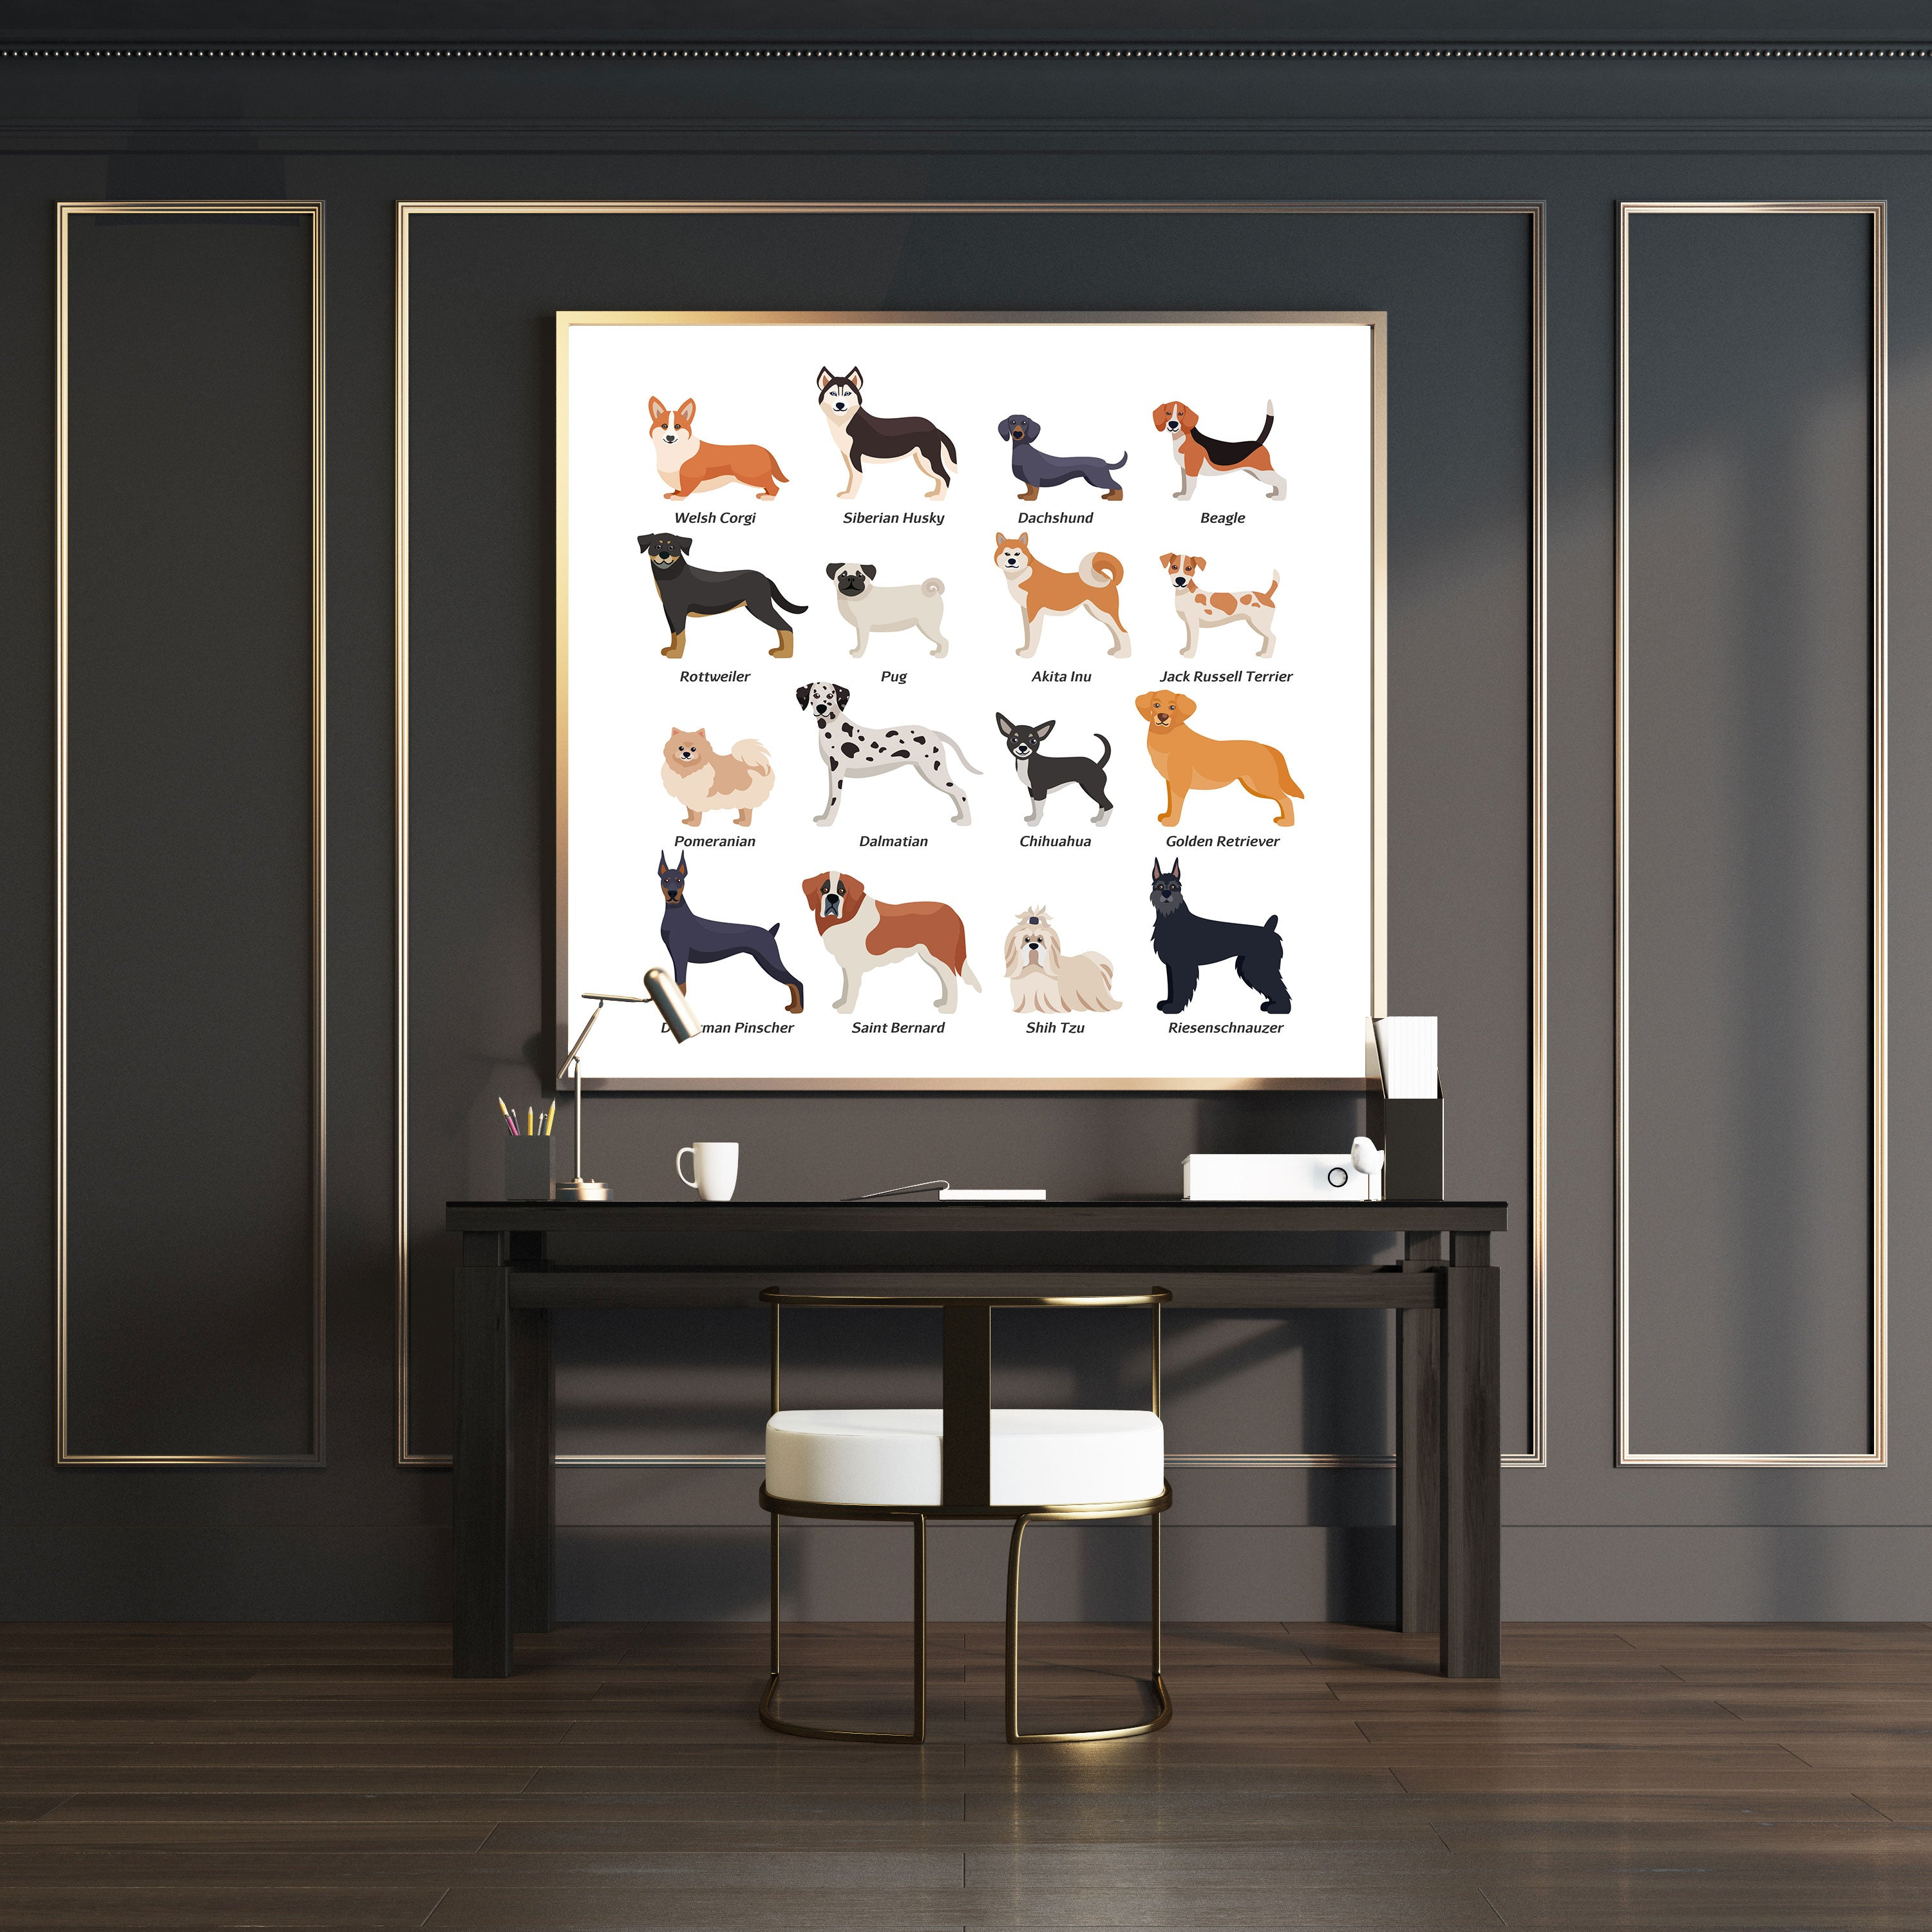 Square wall art print with dog breeds name and images